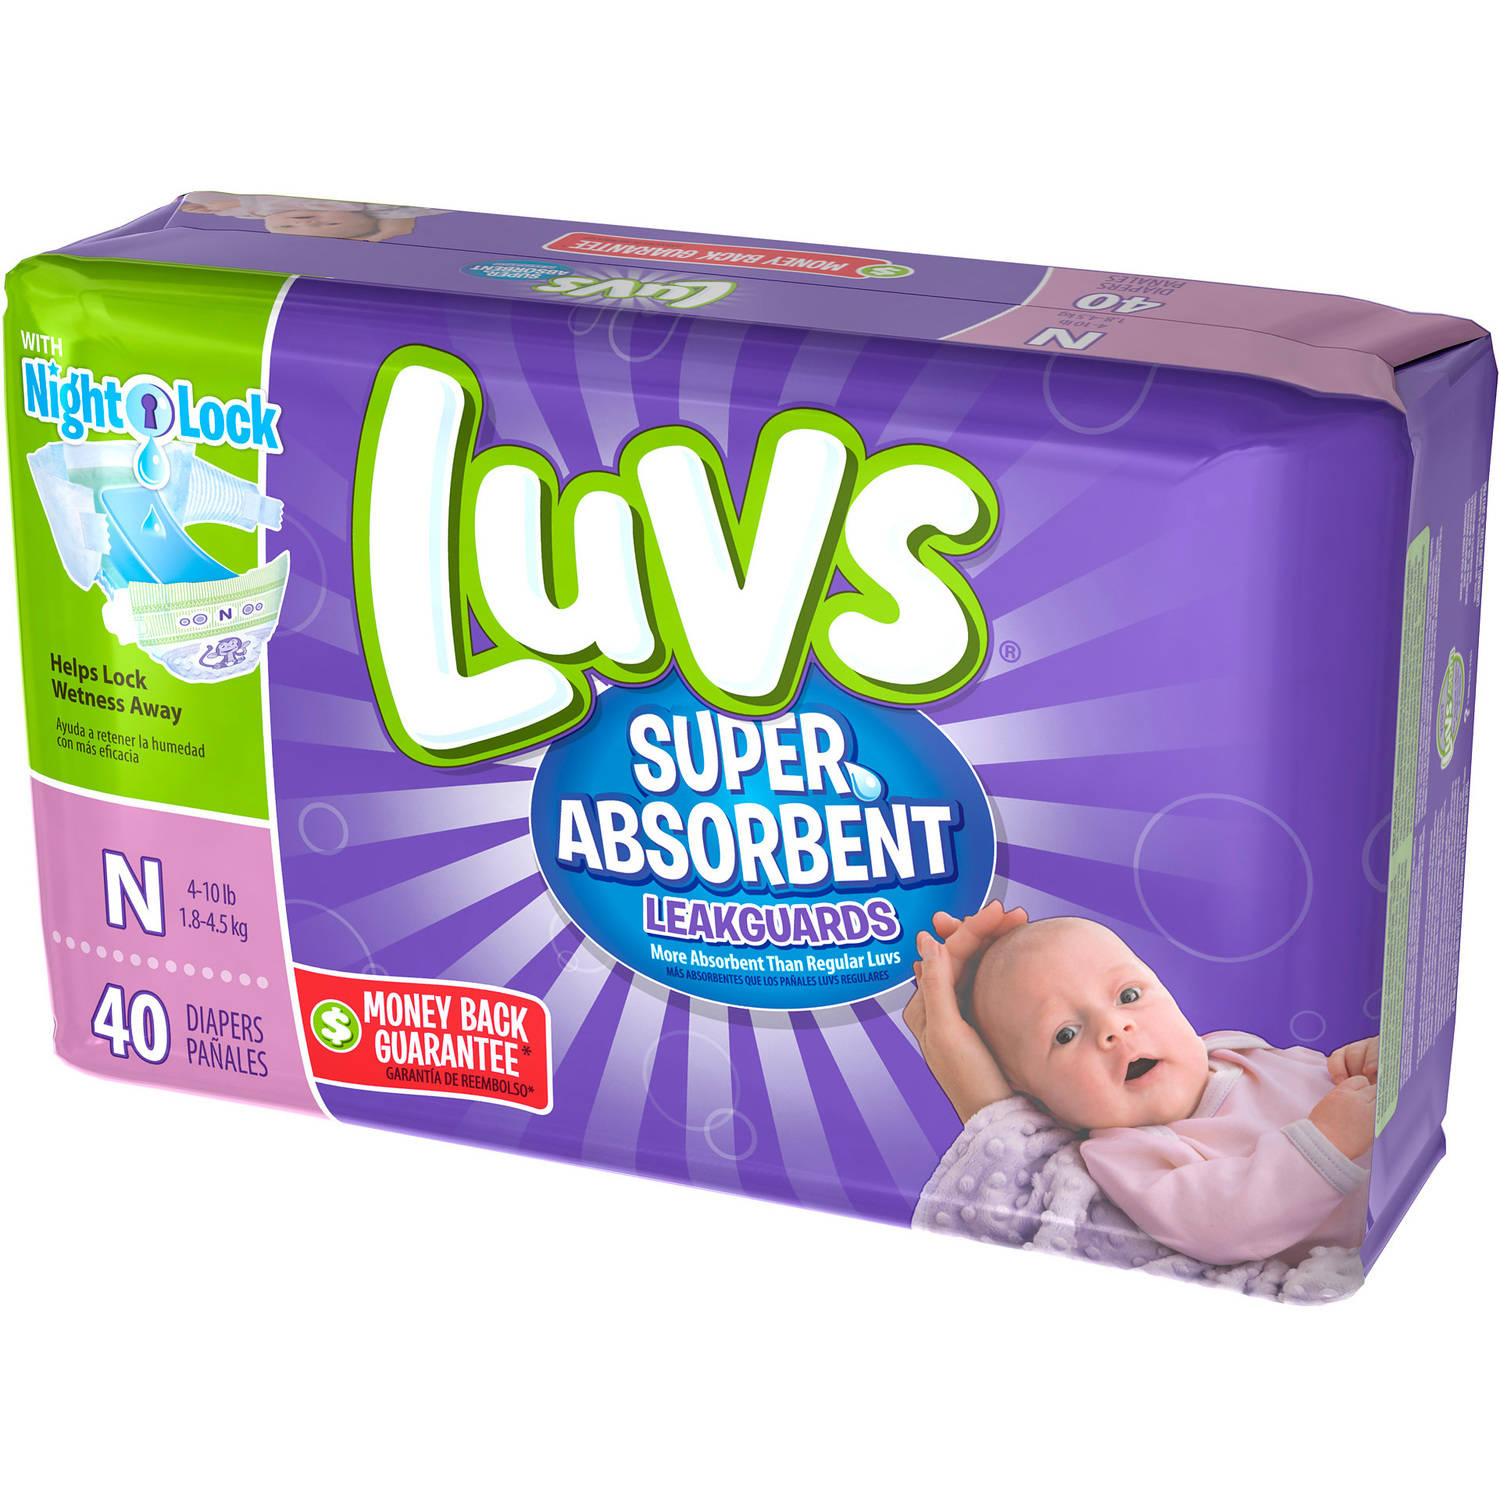 Luvs Super Absorbent Leakguards Diapers, (Choose Your Size)